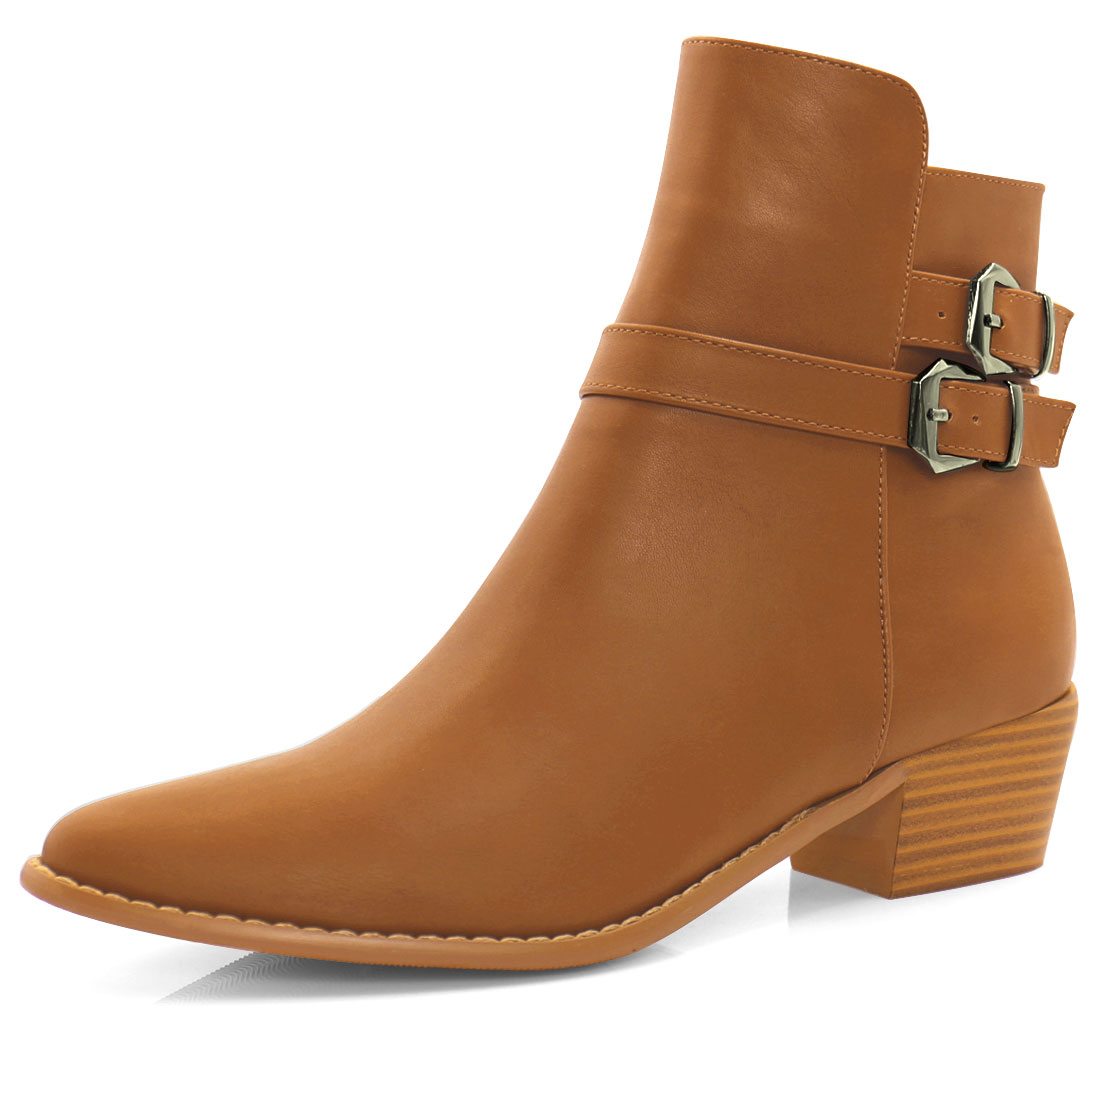 Women Pointed Toe Buckled Strap Zipper Ankle Boots Brown US 9